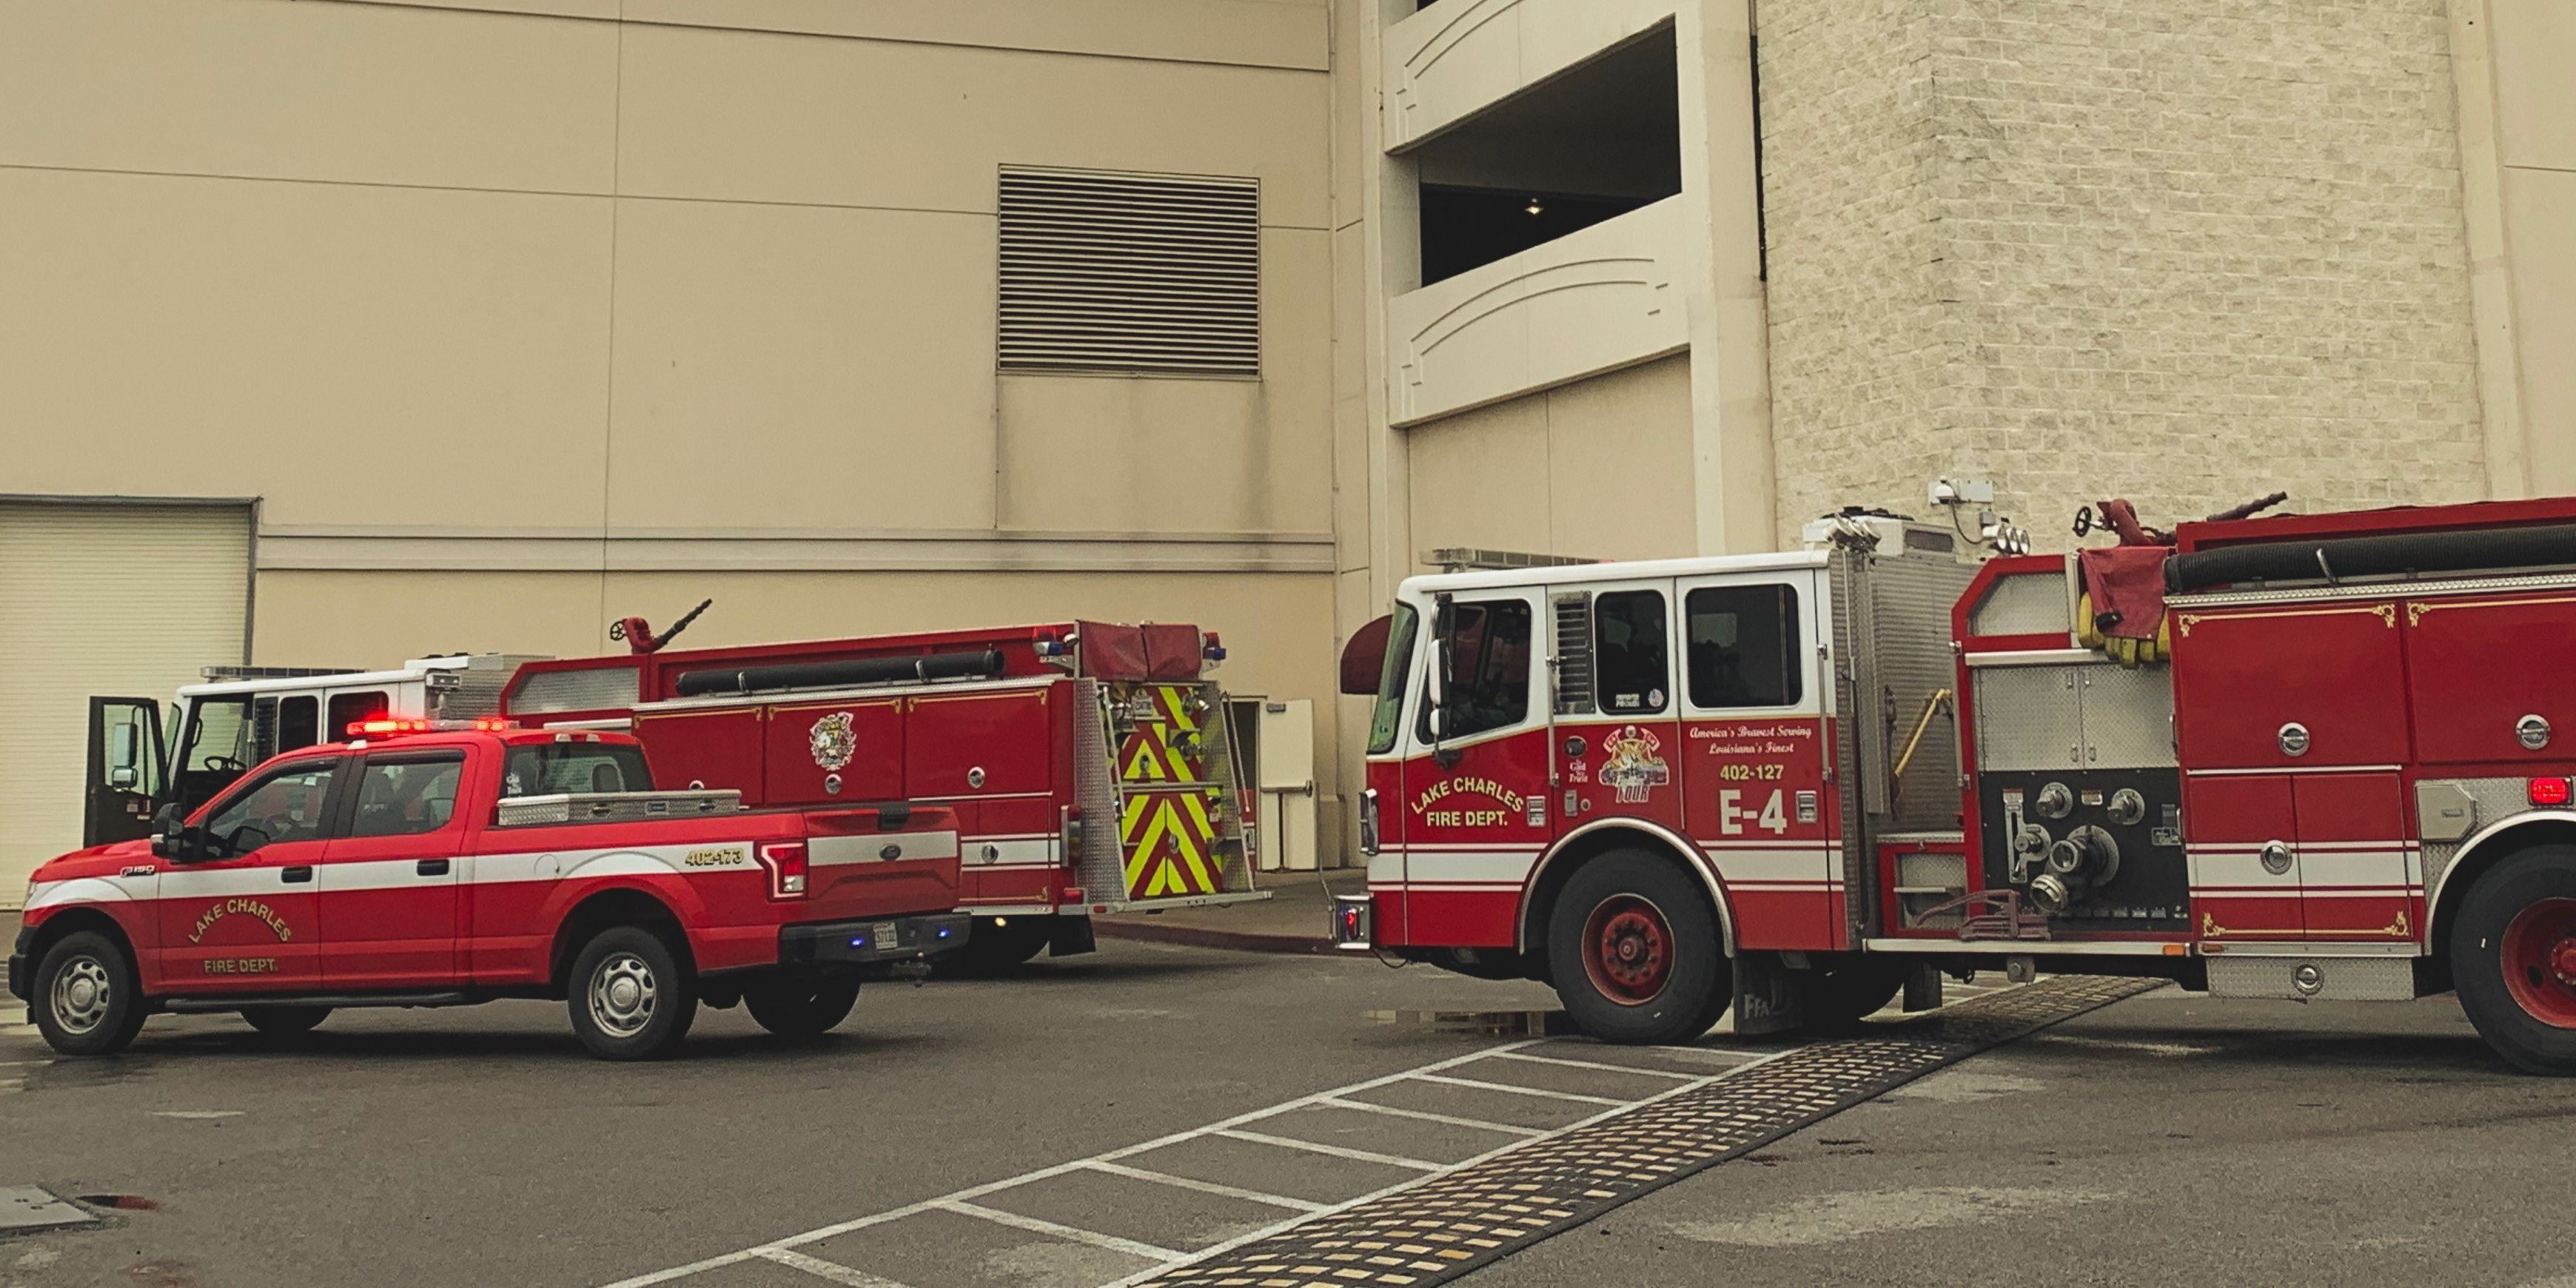 'Small fire' in laundry room at L'auberge